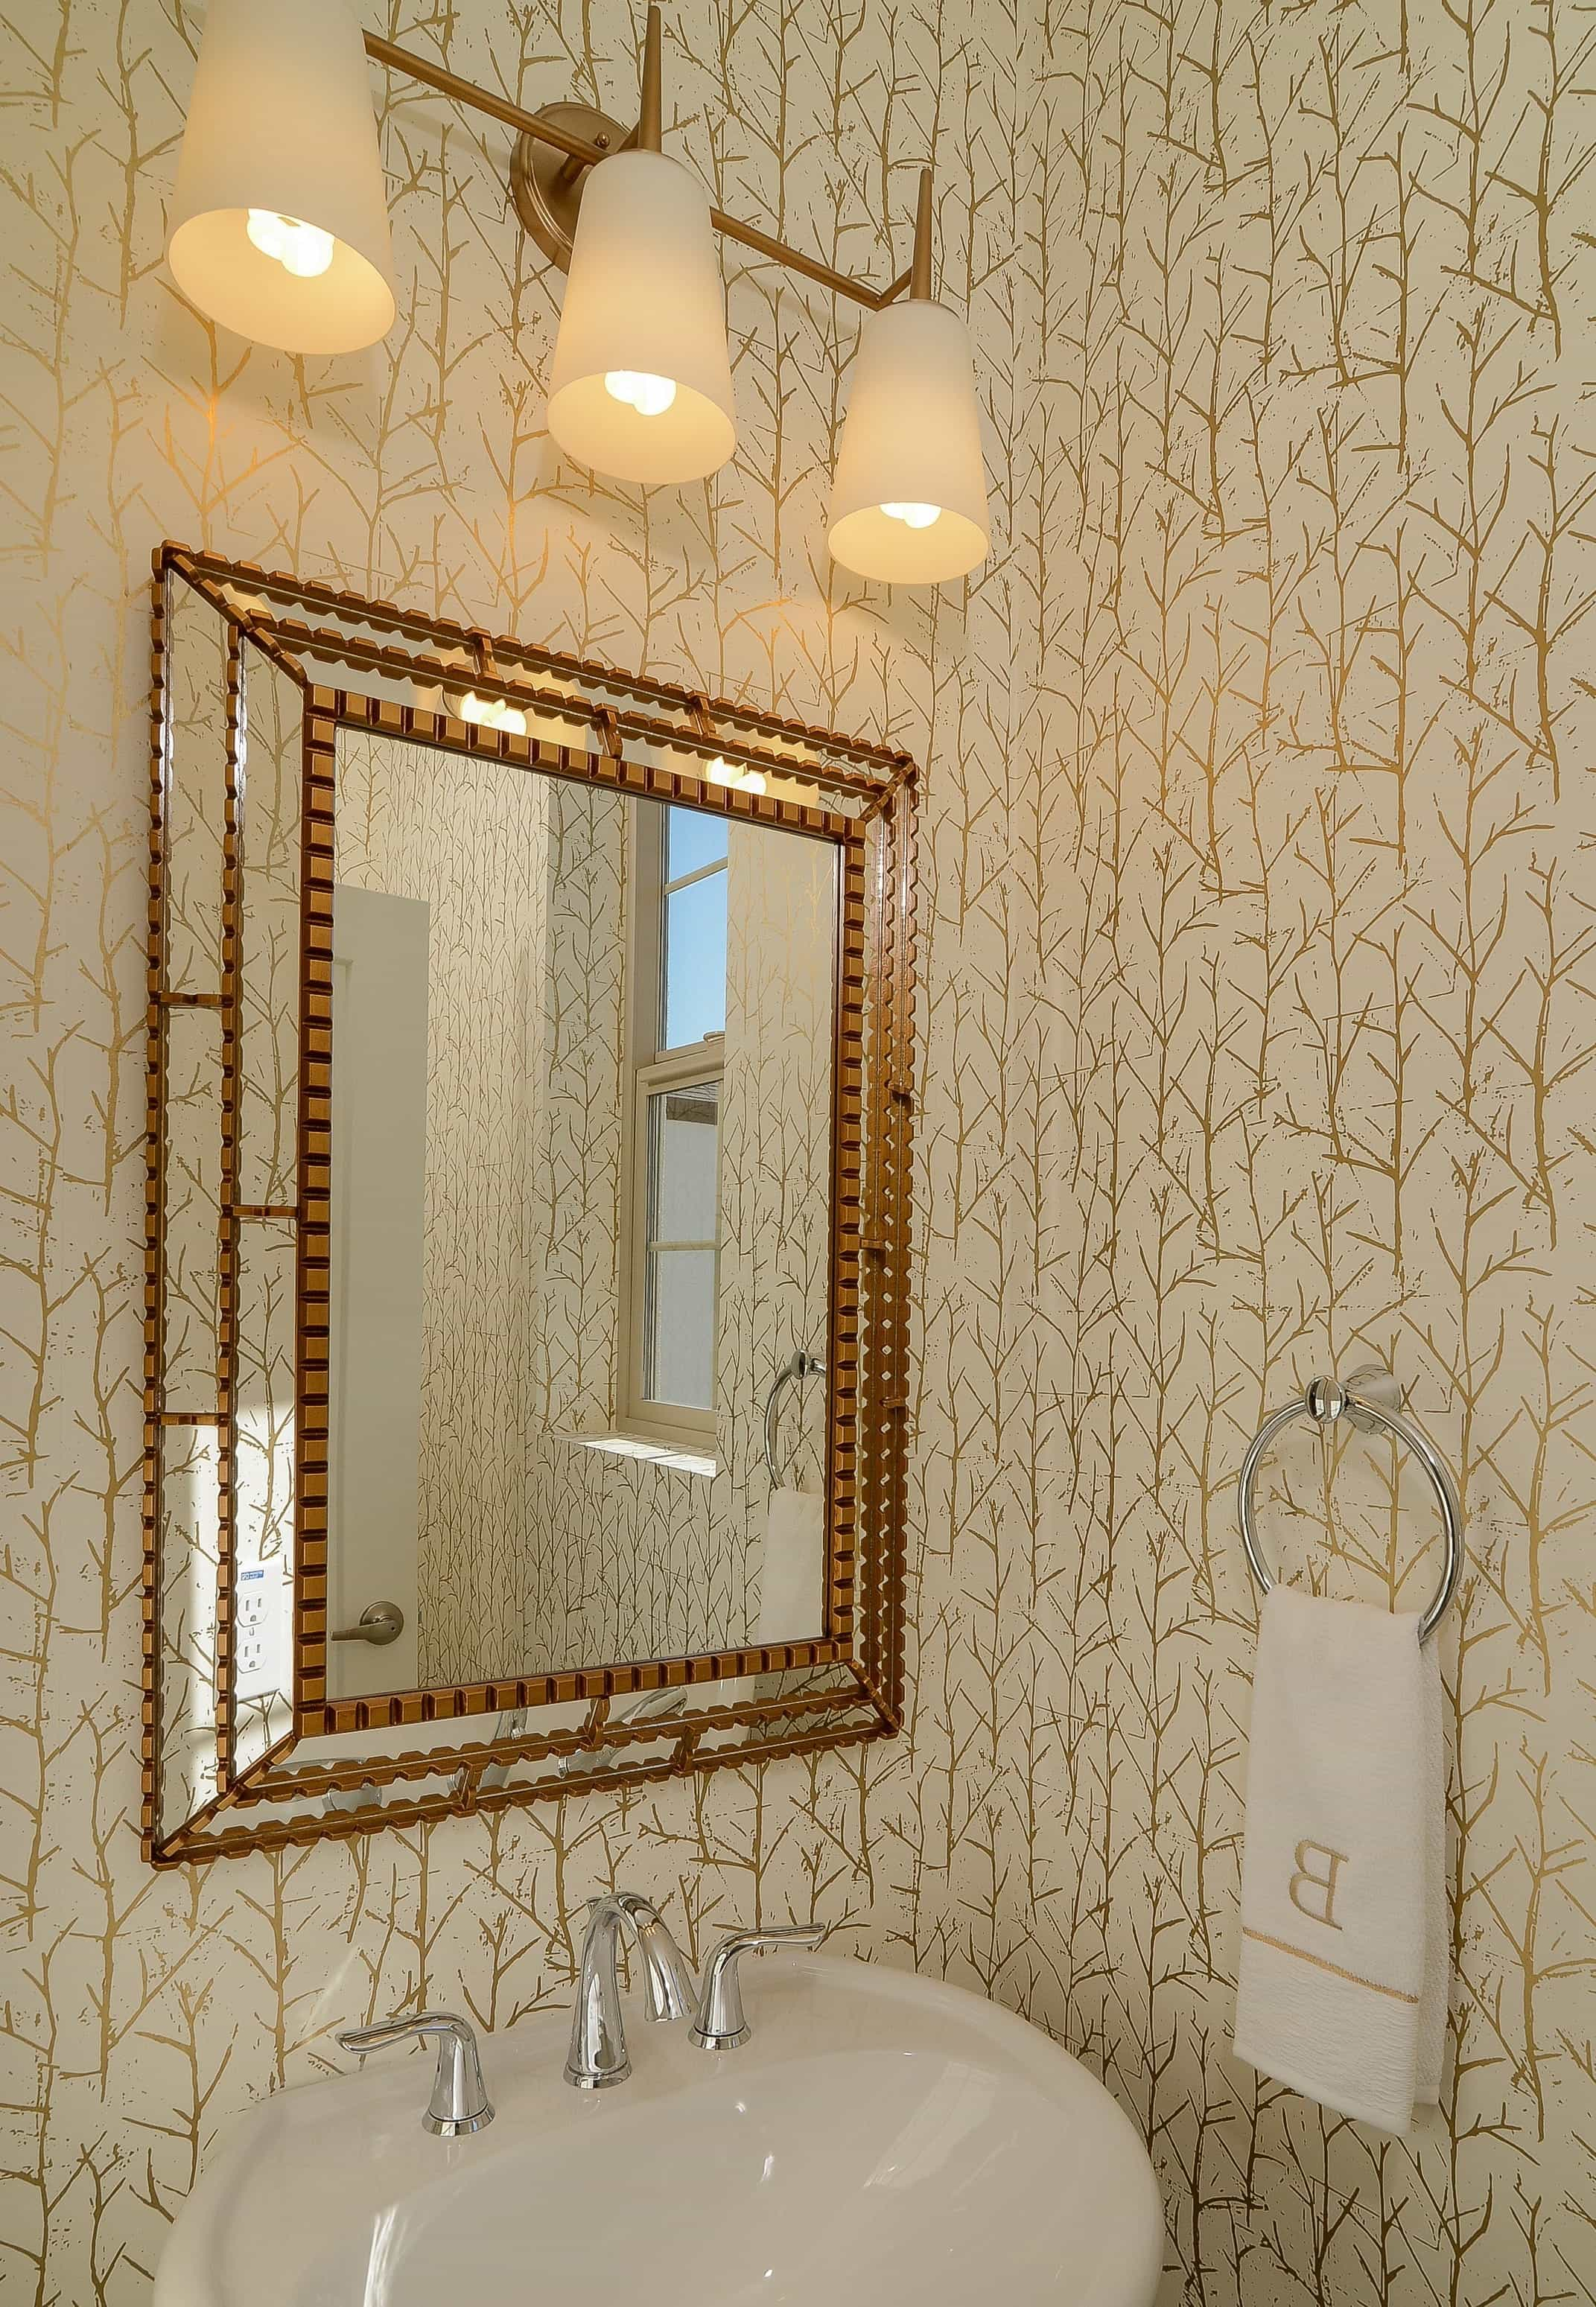 Gold Accented Transitional Bathroom With Three Light Sconce And Textured Mirror Frame (Image 11 of 20)